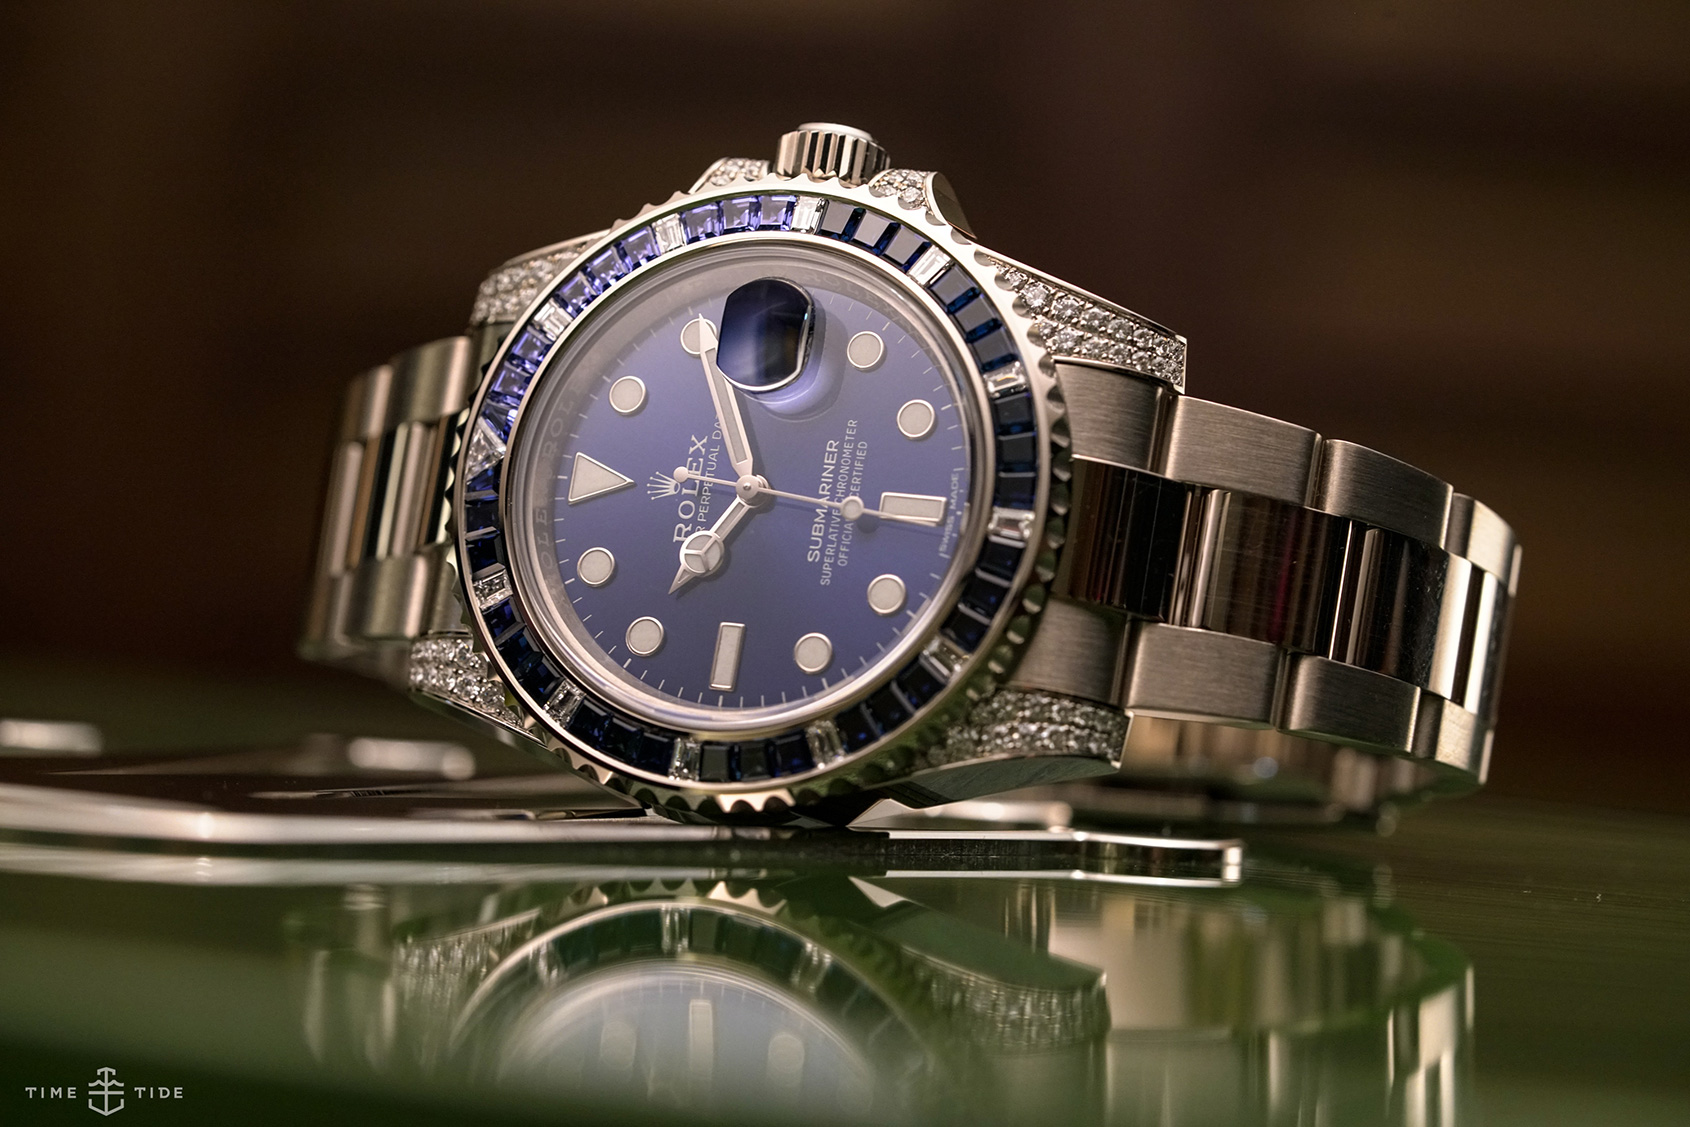 HANDS-ON: The mysterious Rolex Submariner Date ref. 116659 SABR – white gold, blue dial and a whole lot of bling